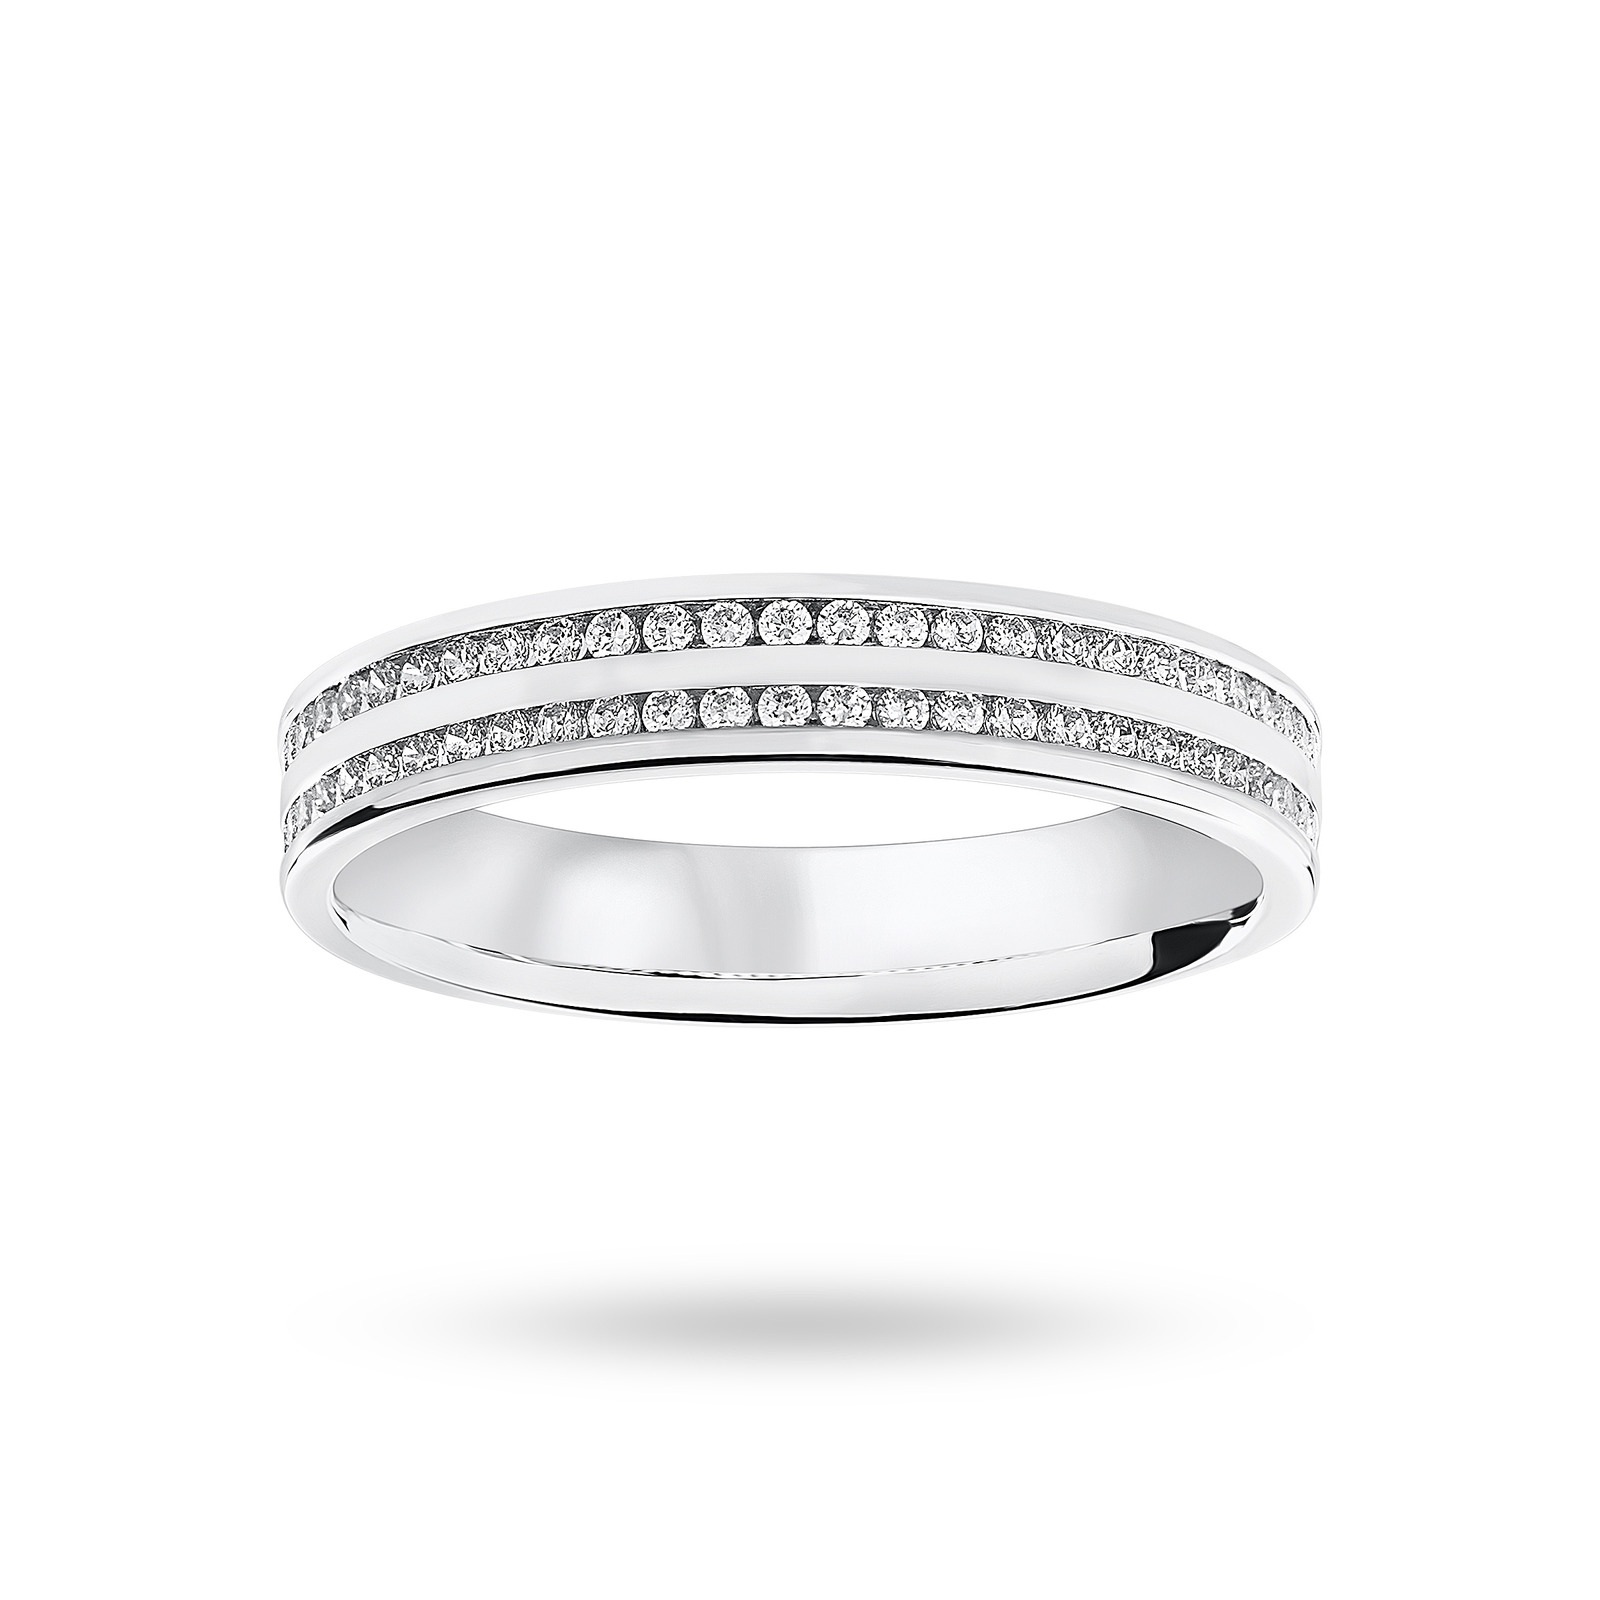 18ct White Gold 0.28ct 2 Row Half Eternity Ring - Ring Size L